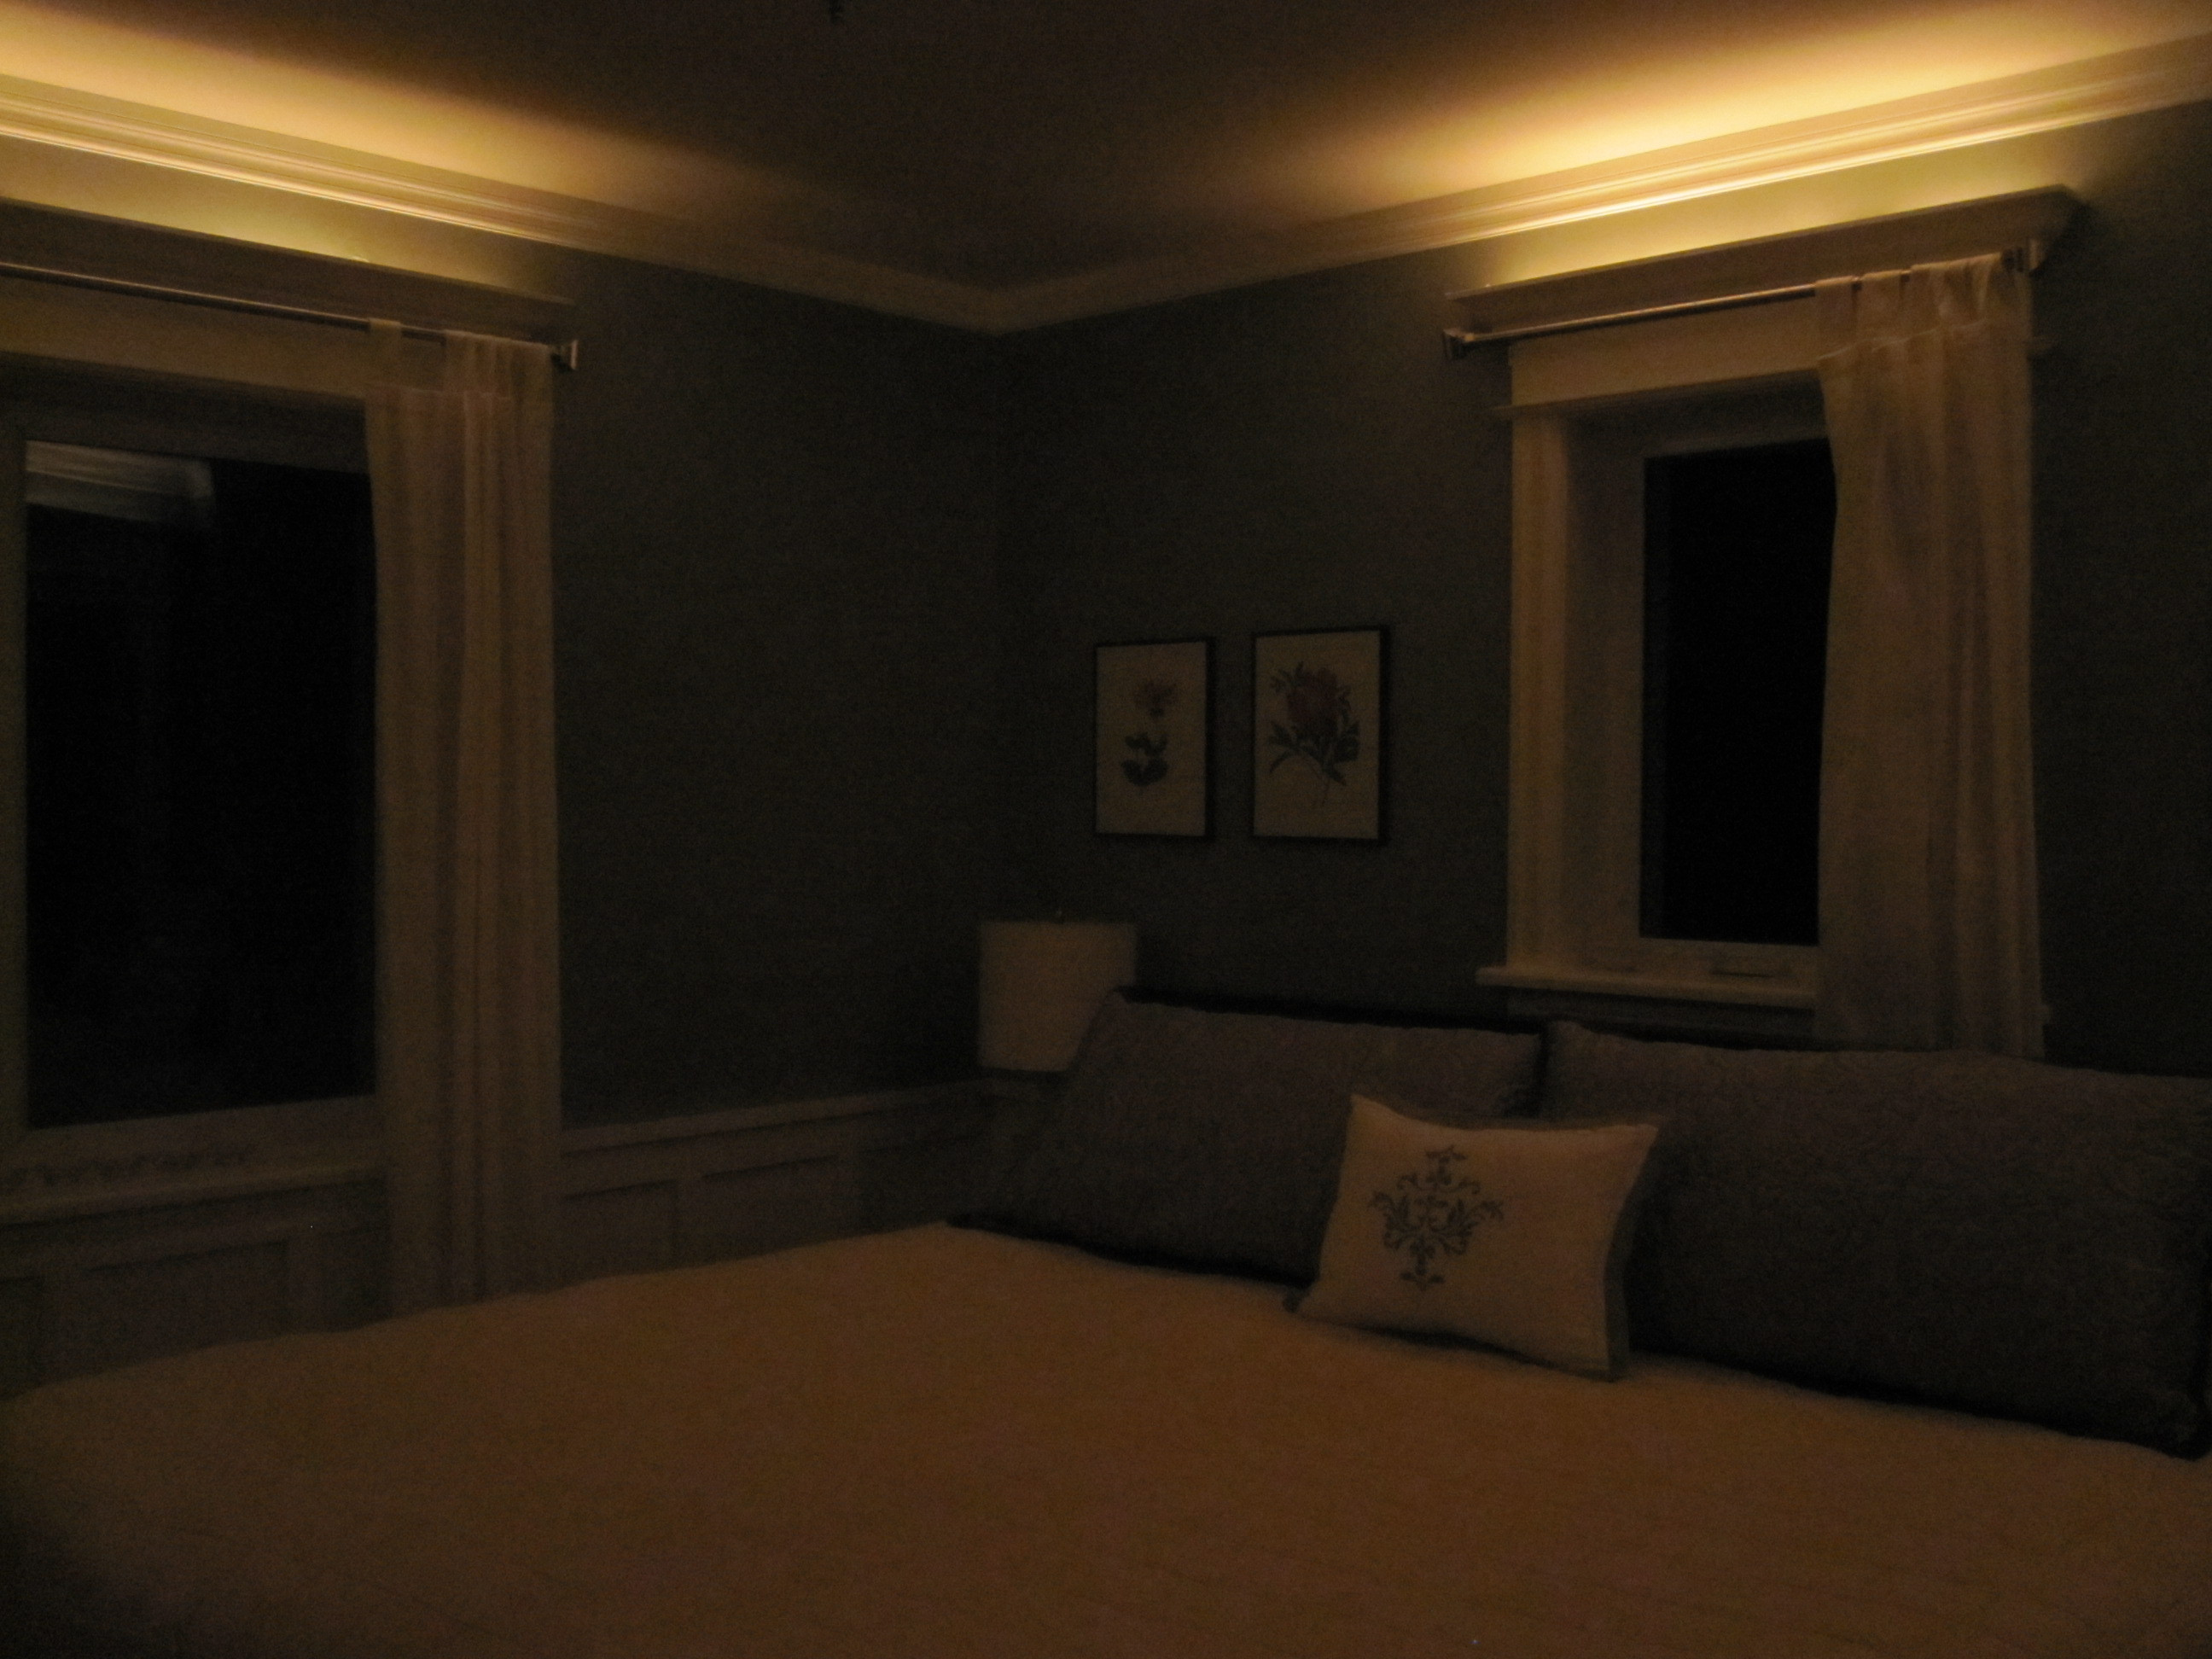 Best ideas about Crown Molding Lighting . Save or Pin The Crowning Jewel Now.